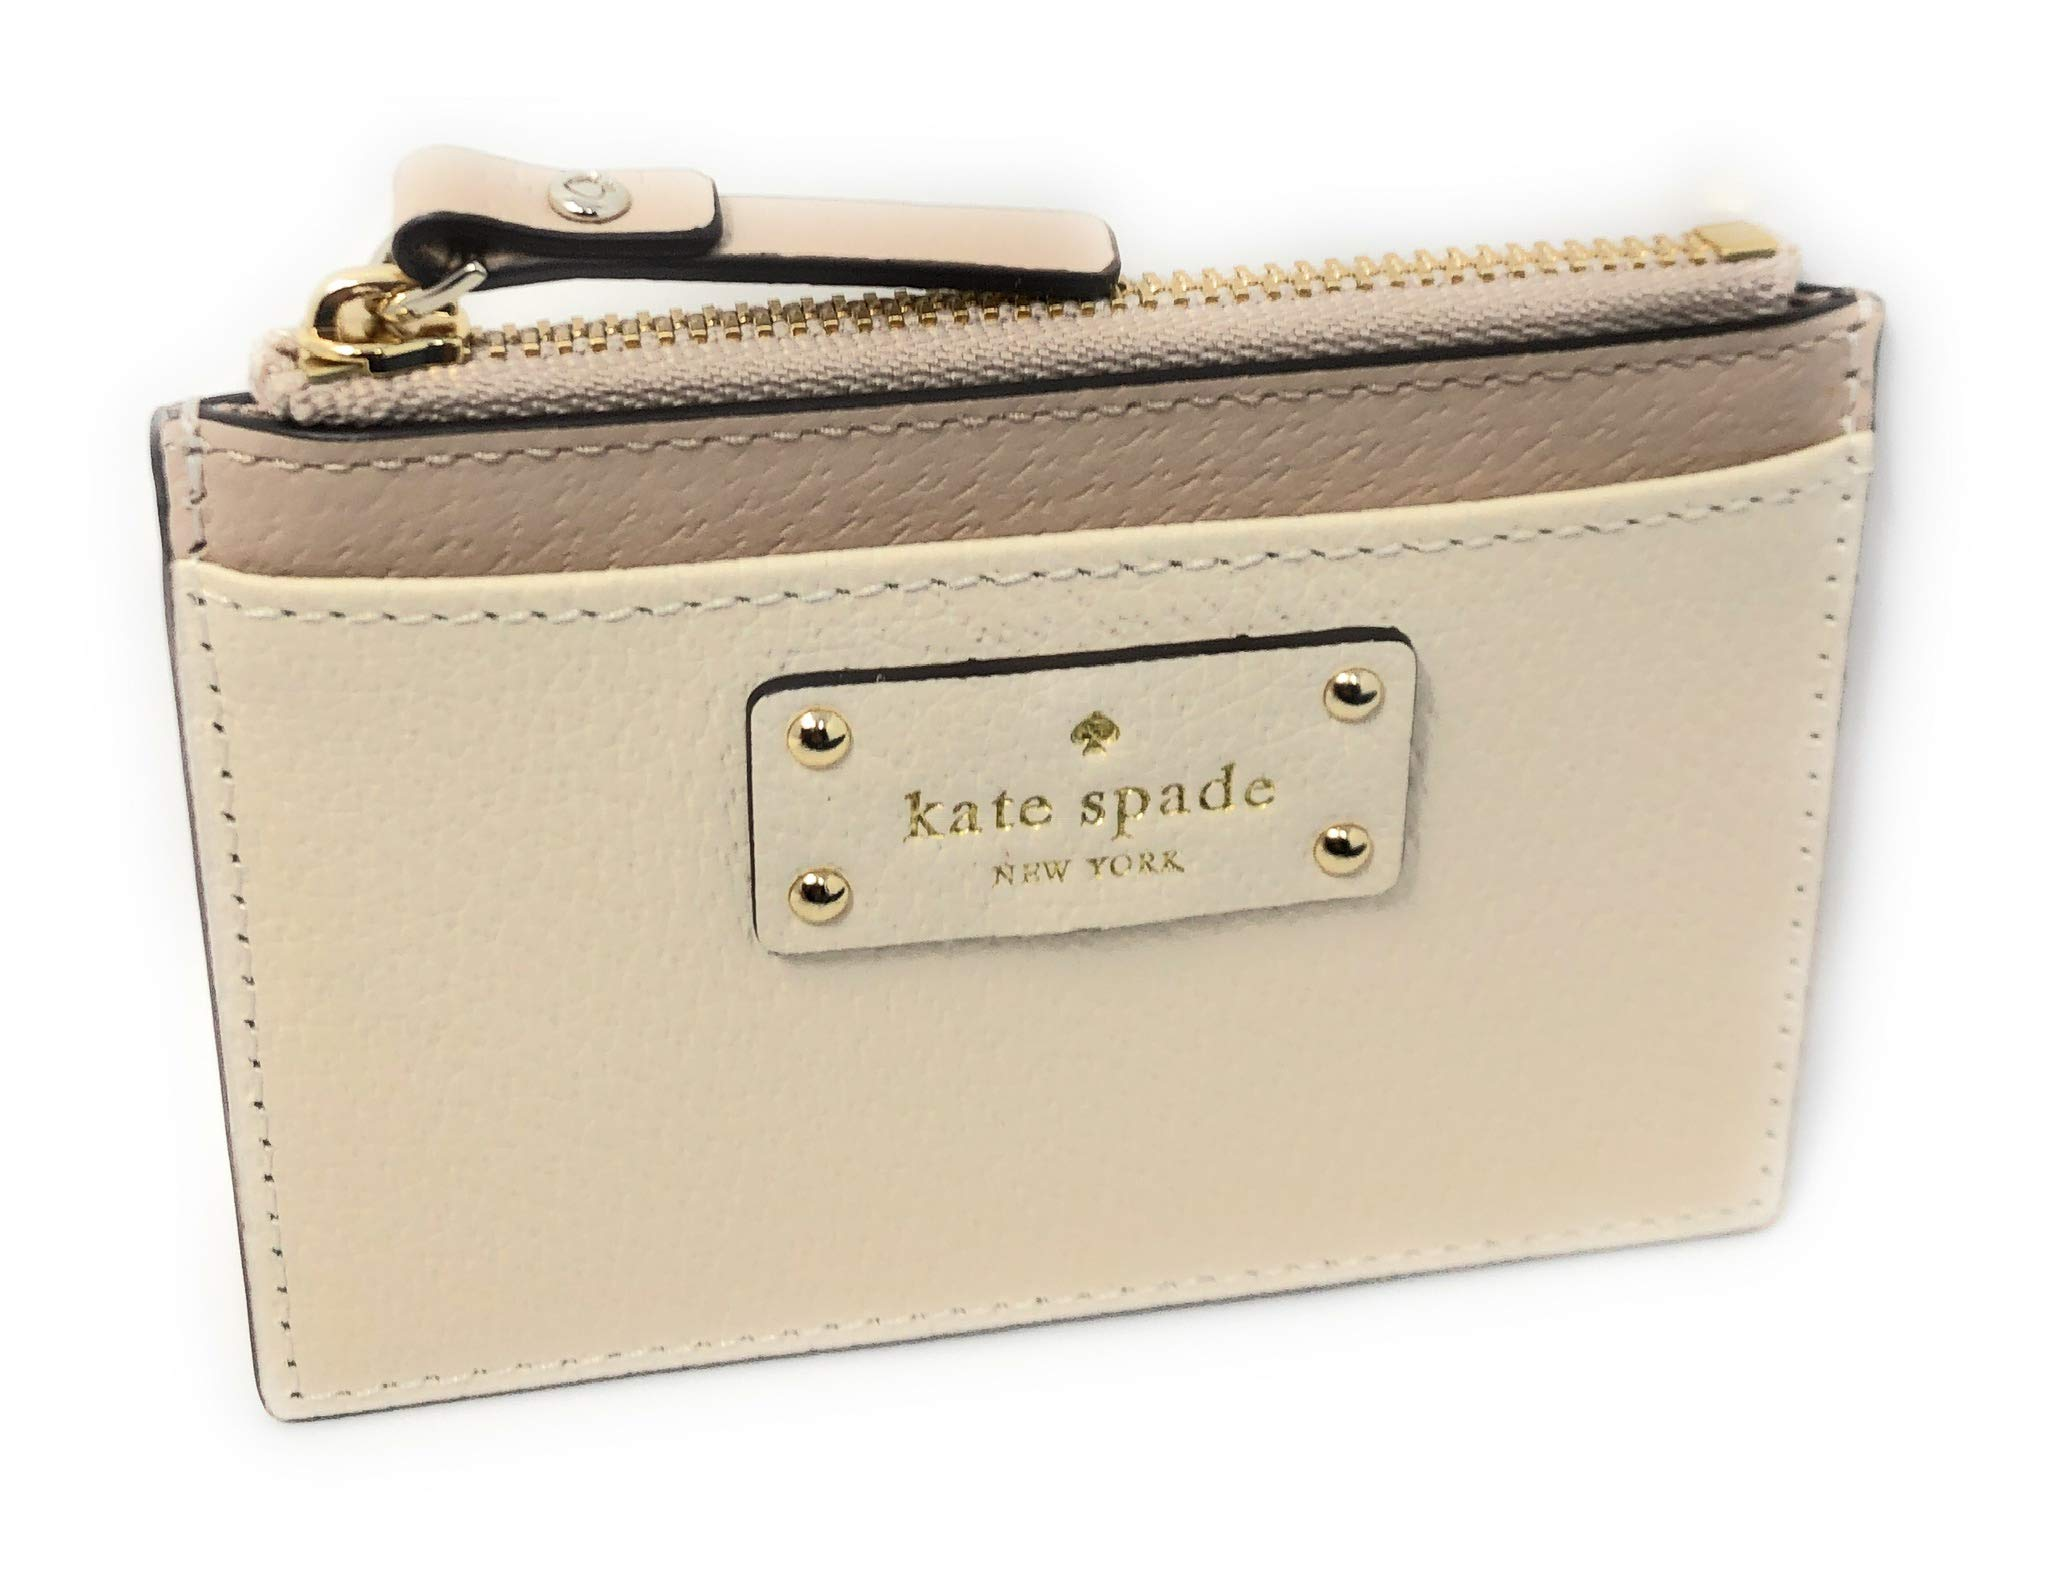 Kate Spade Adi Wallet Coin Purse Business Card Holder Credit Card Case